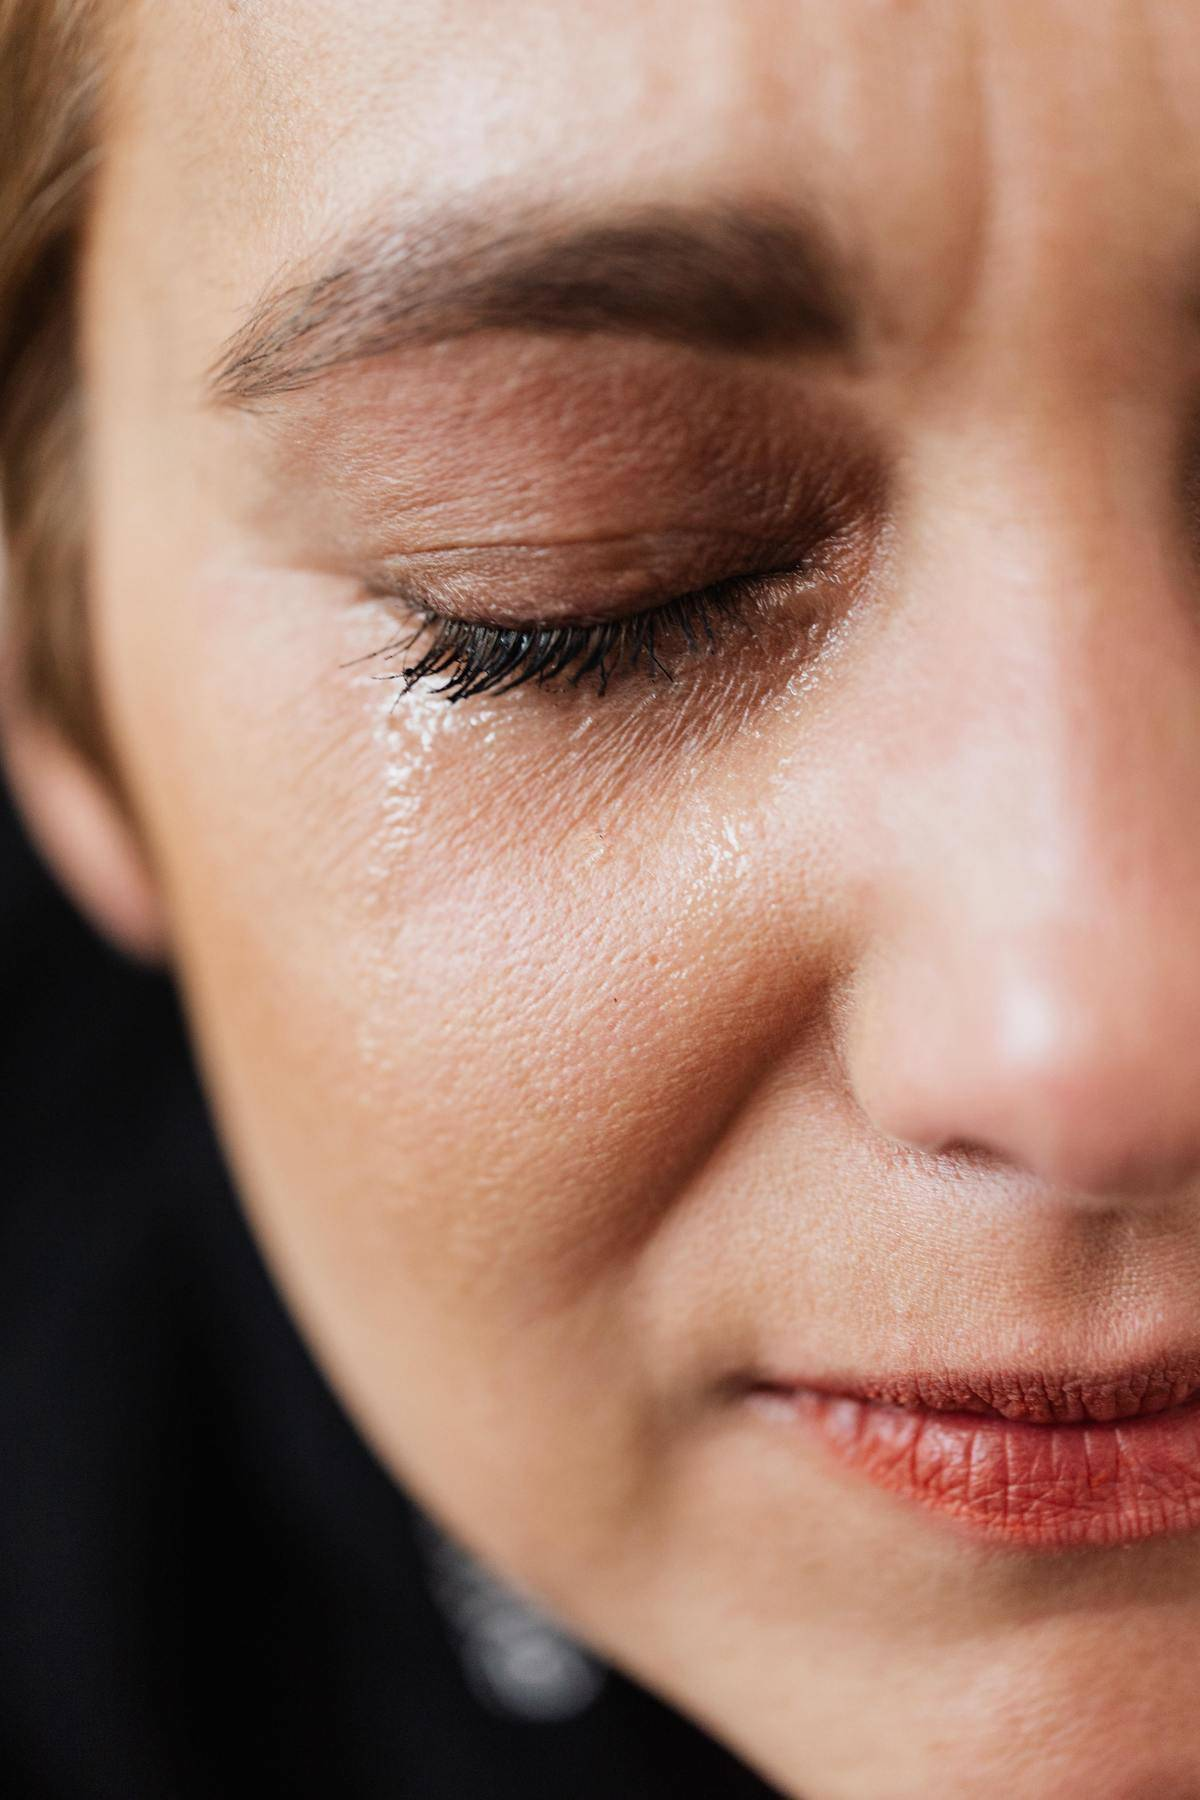 woman with single tear running down her face